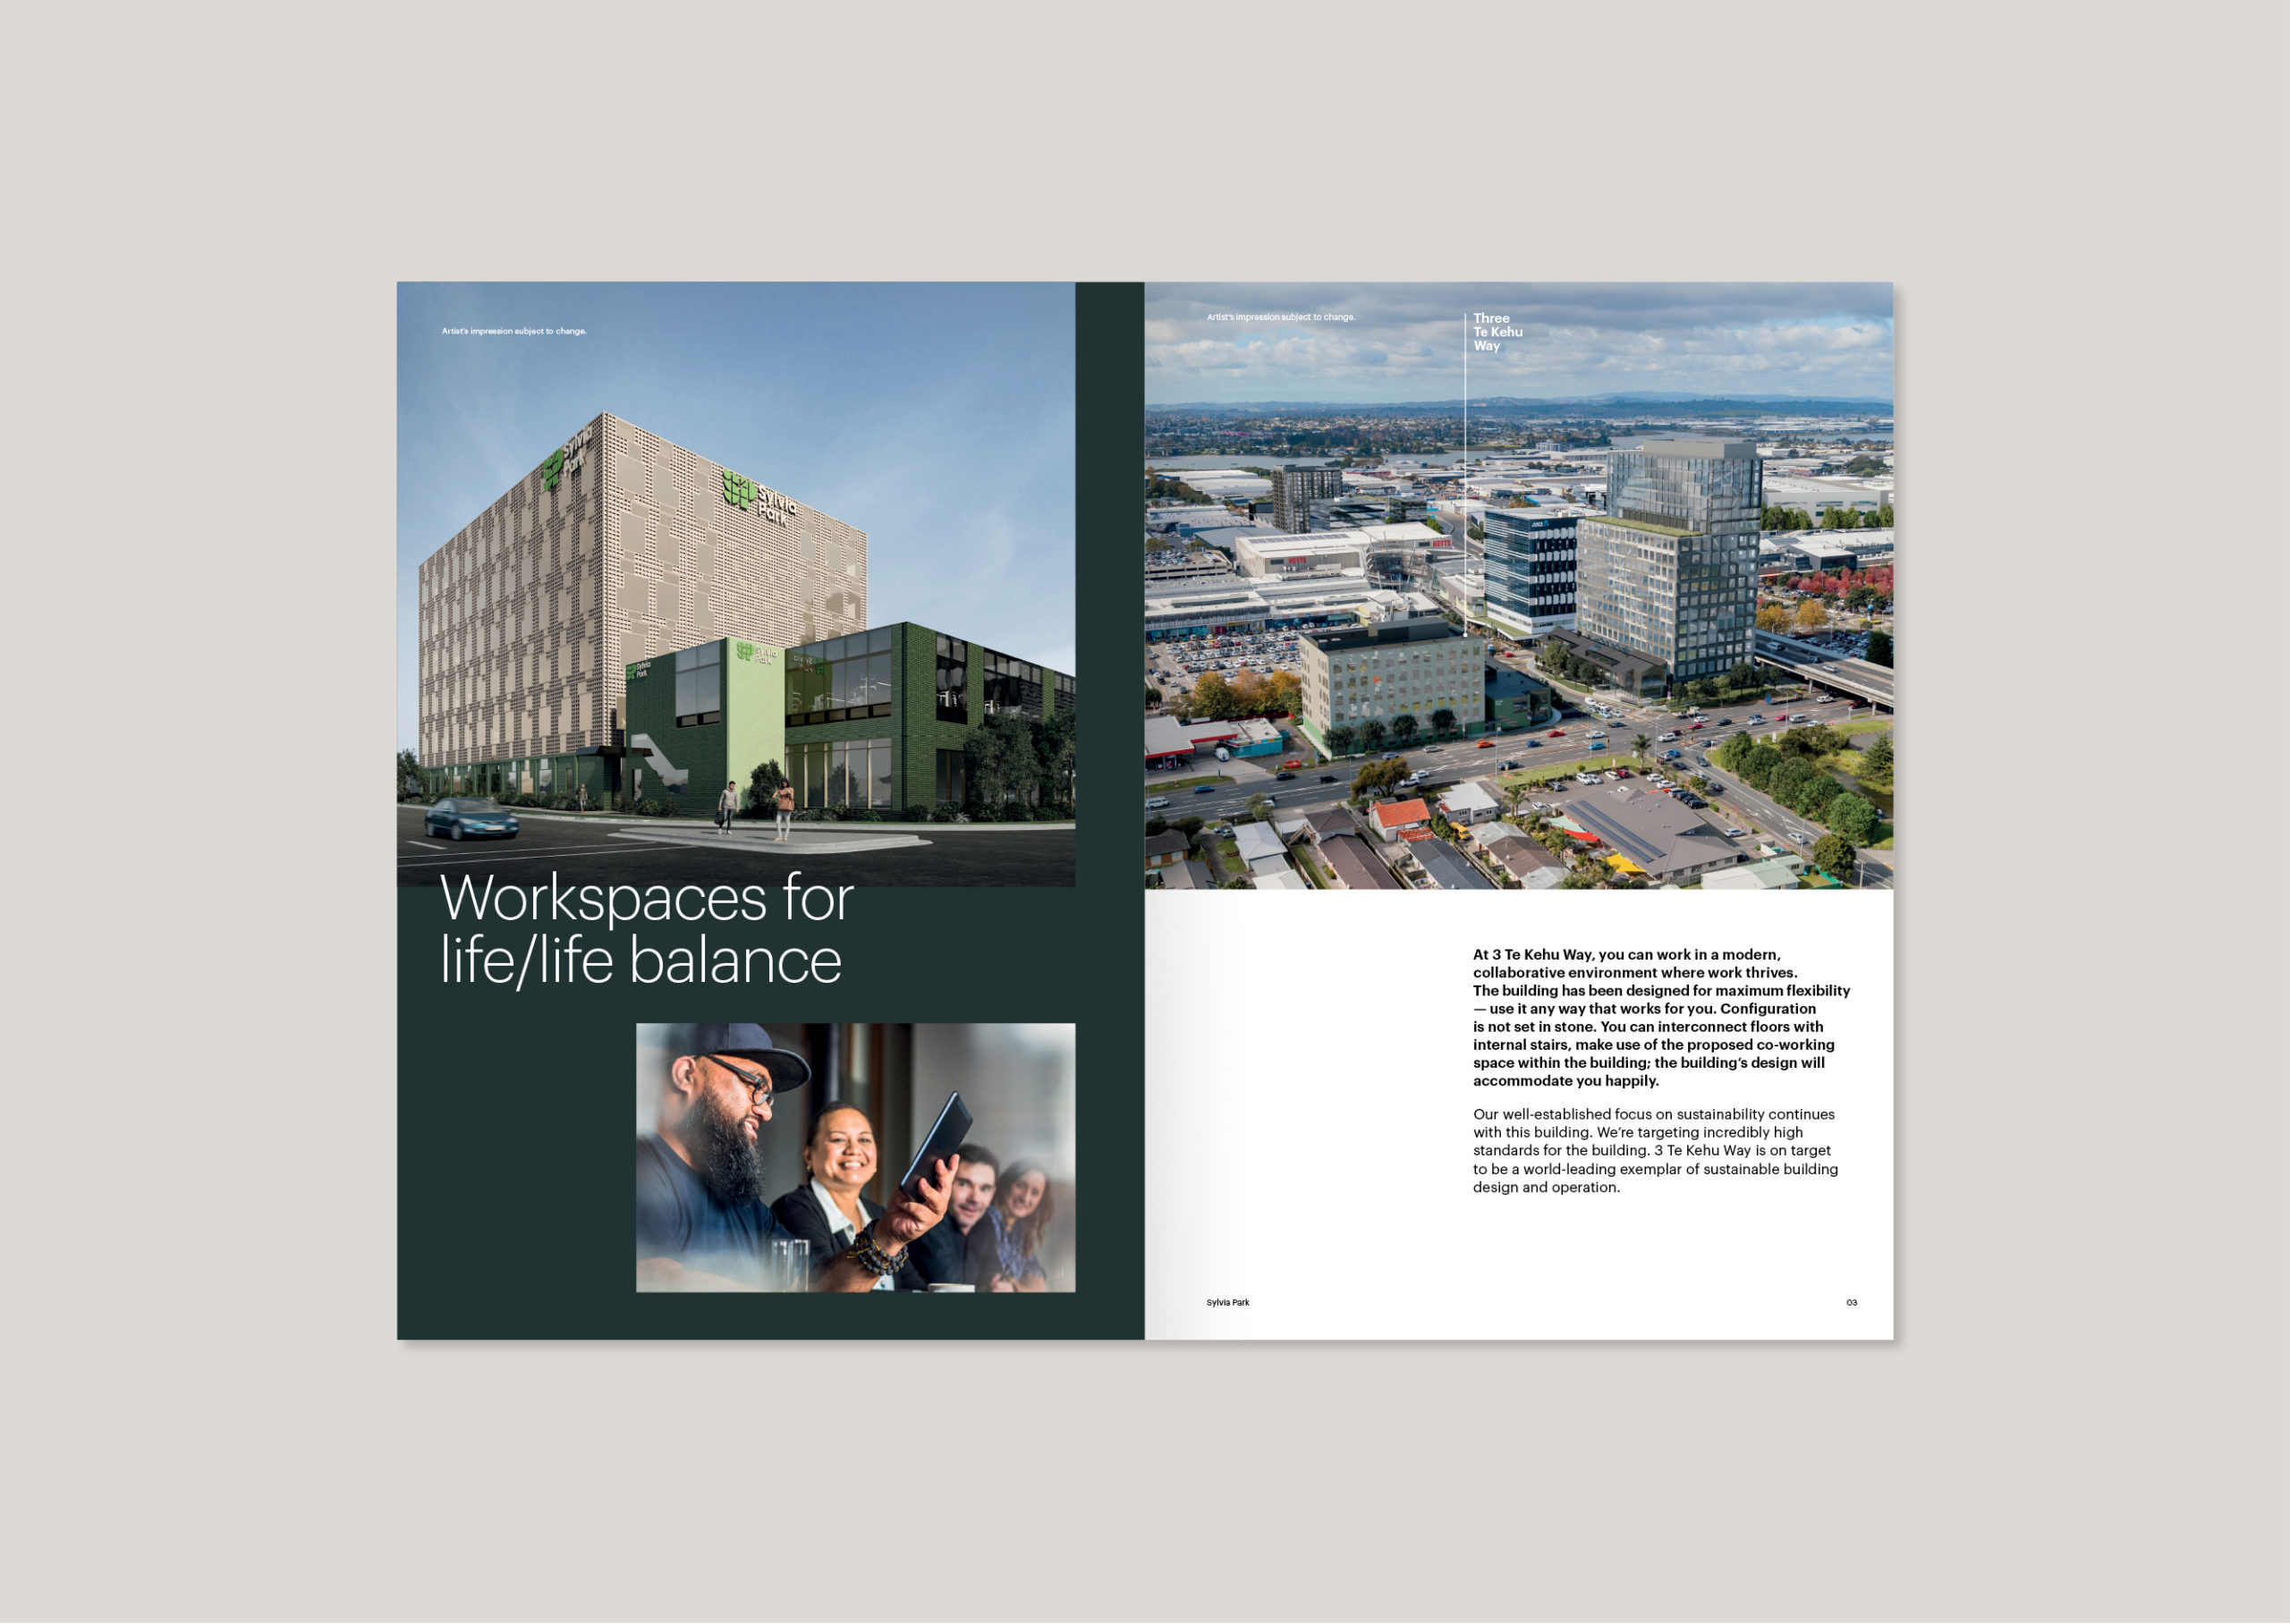 3 Te Kehu Way Commercial Property Development Brochure showing render of completed building in situ from 3/4 angle